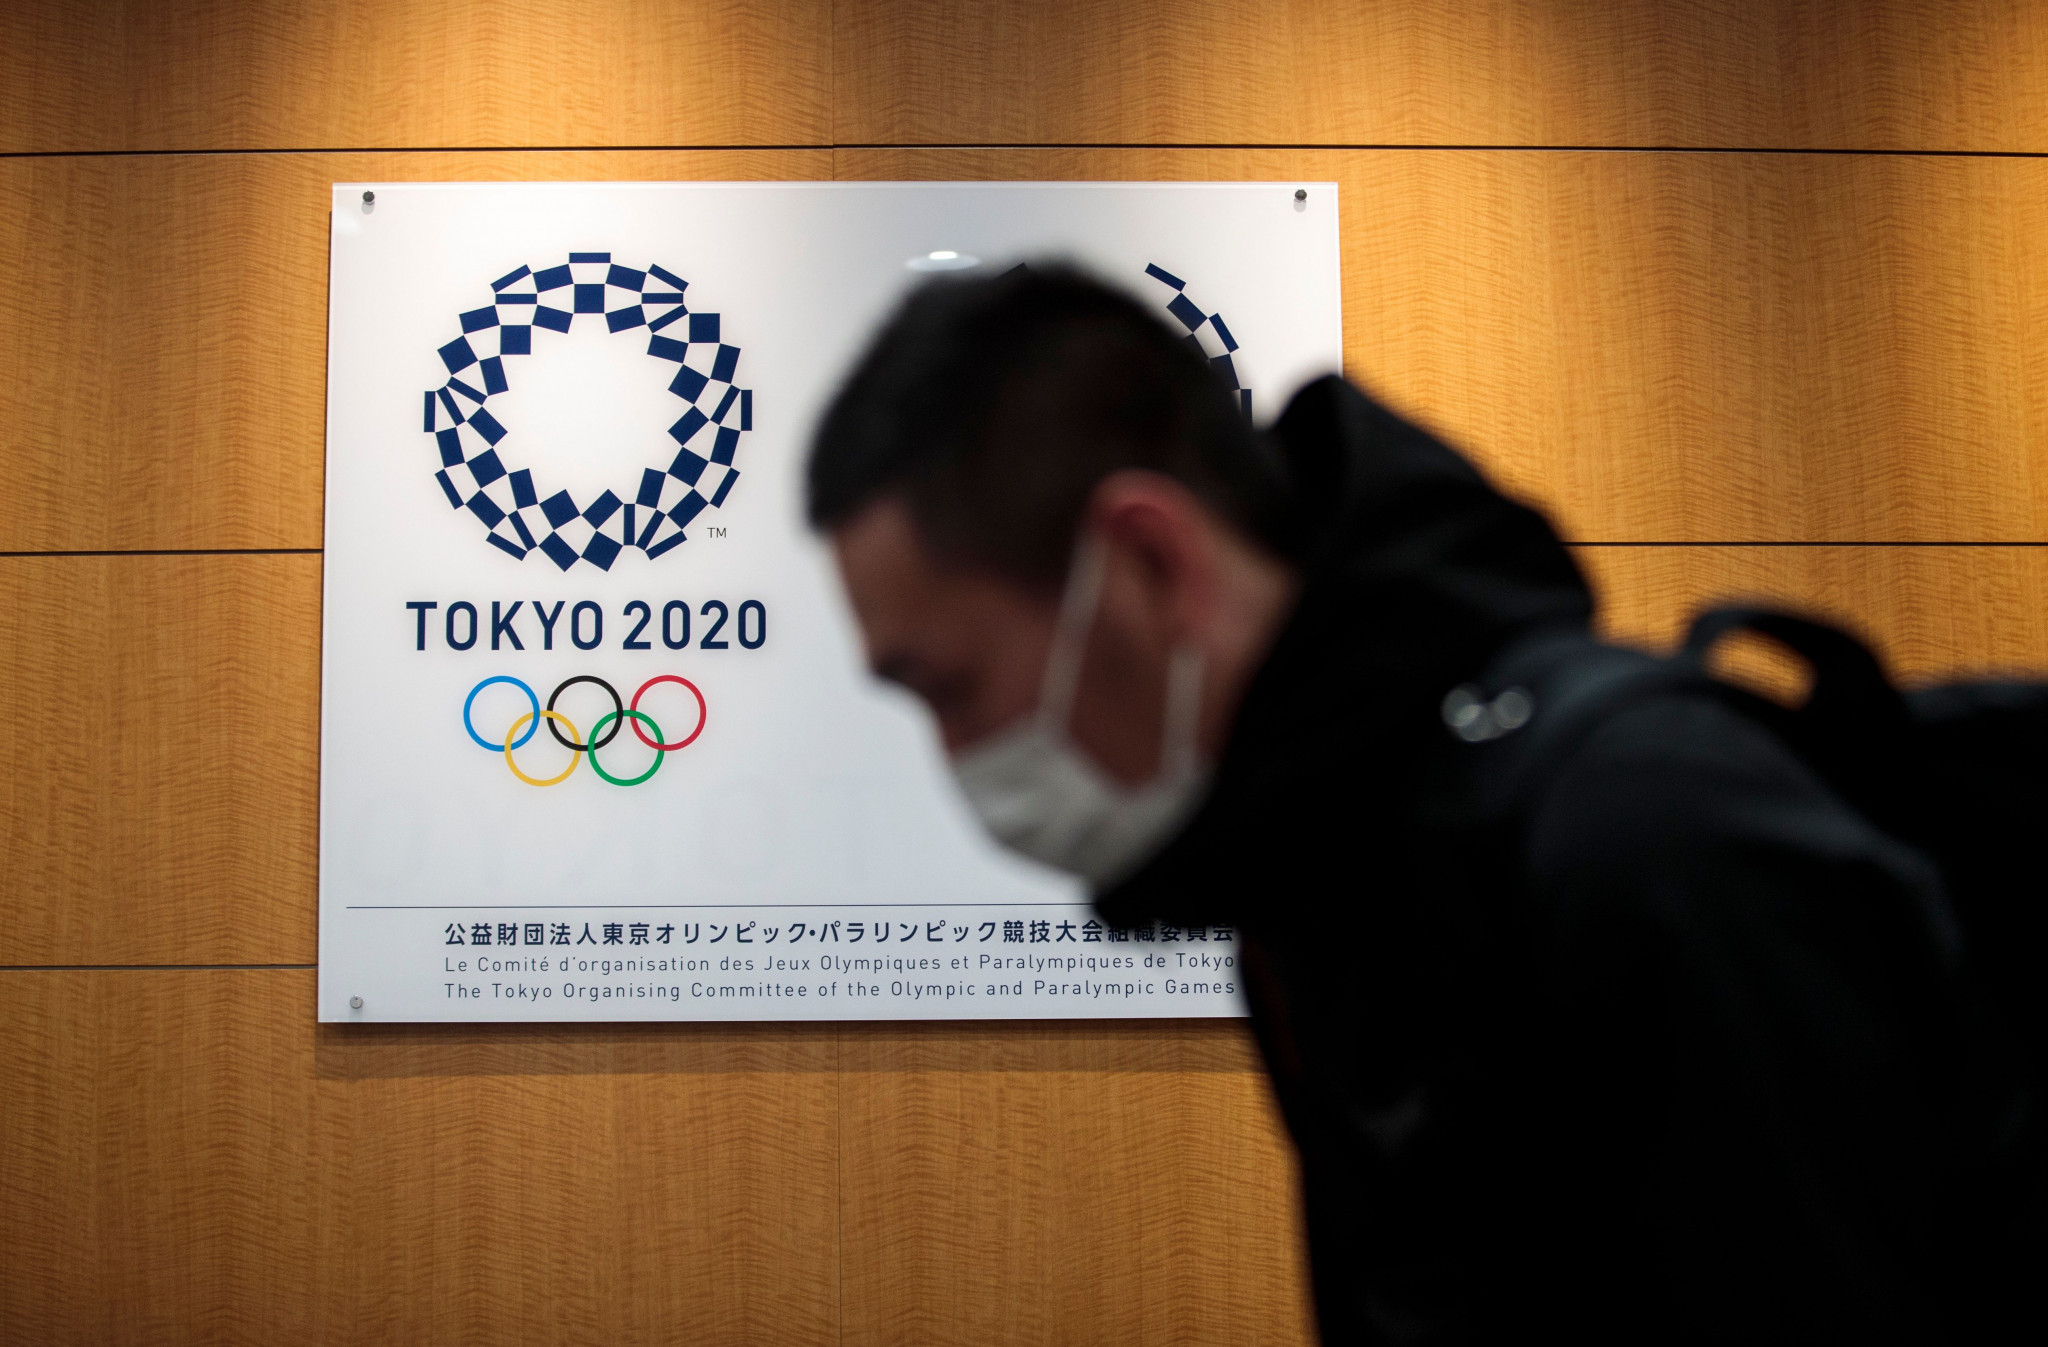 There are fears a lack of a coronavirus vaccine may lead to the cancellation of the Tokyo 2020 Olympic and Paralympic Games ©Getty Images